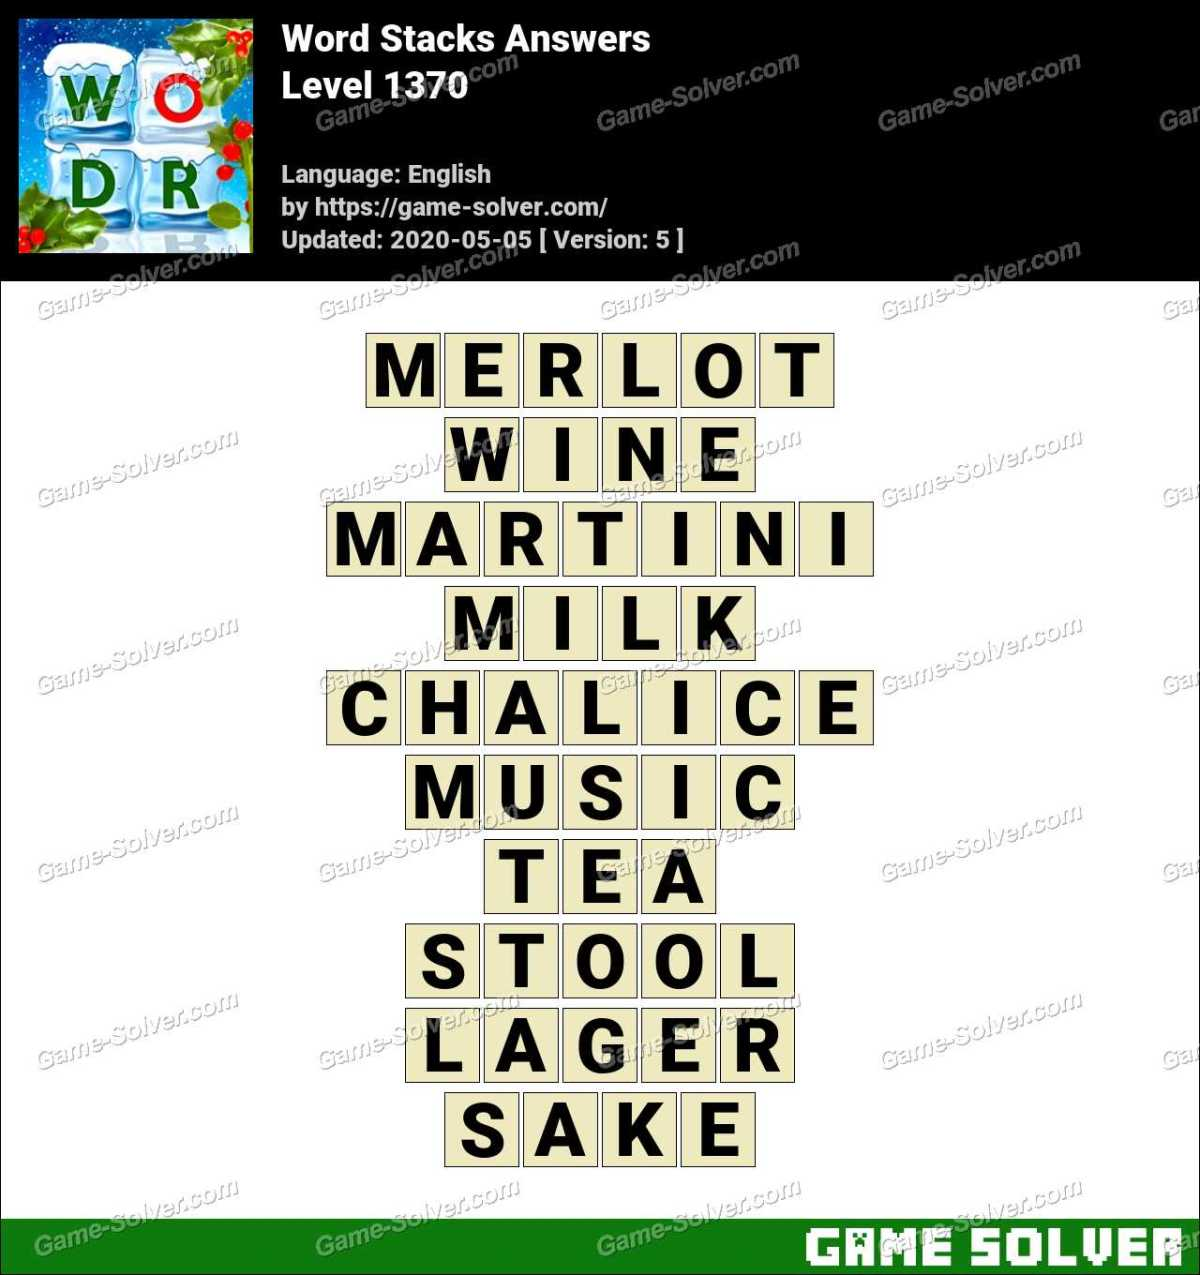 Word Stacks Level 1370 Answers